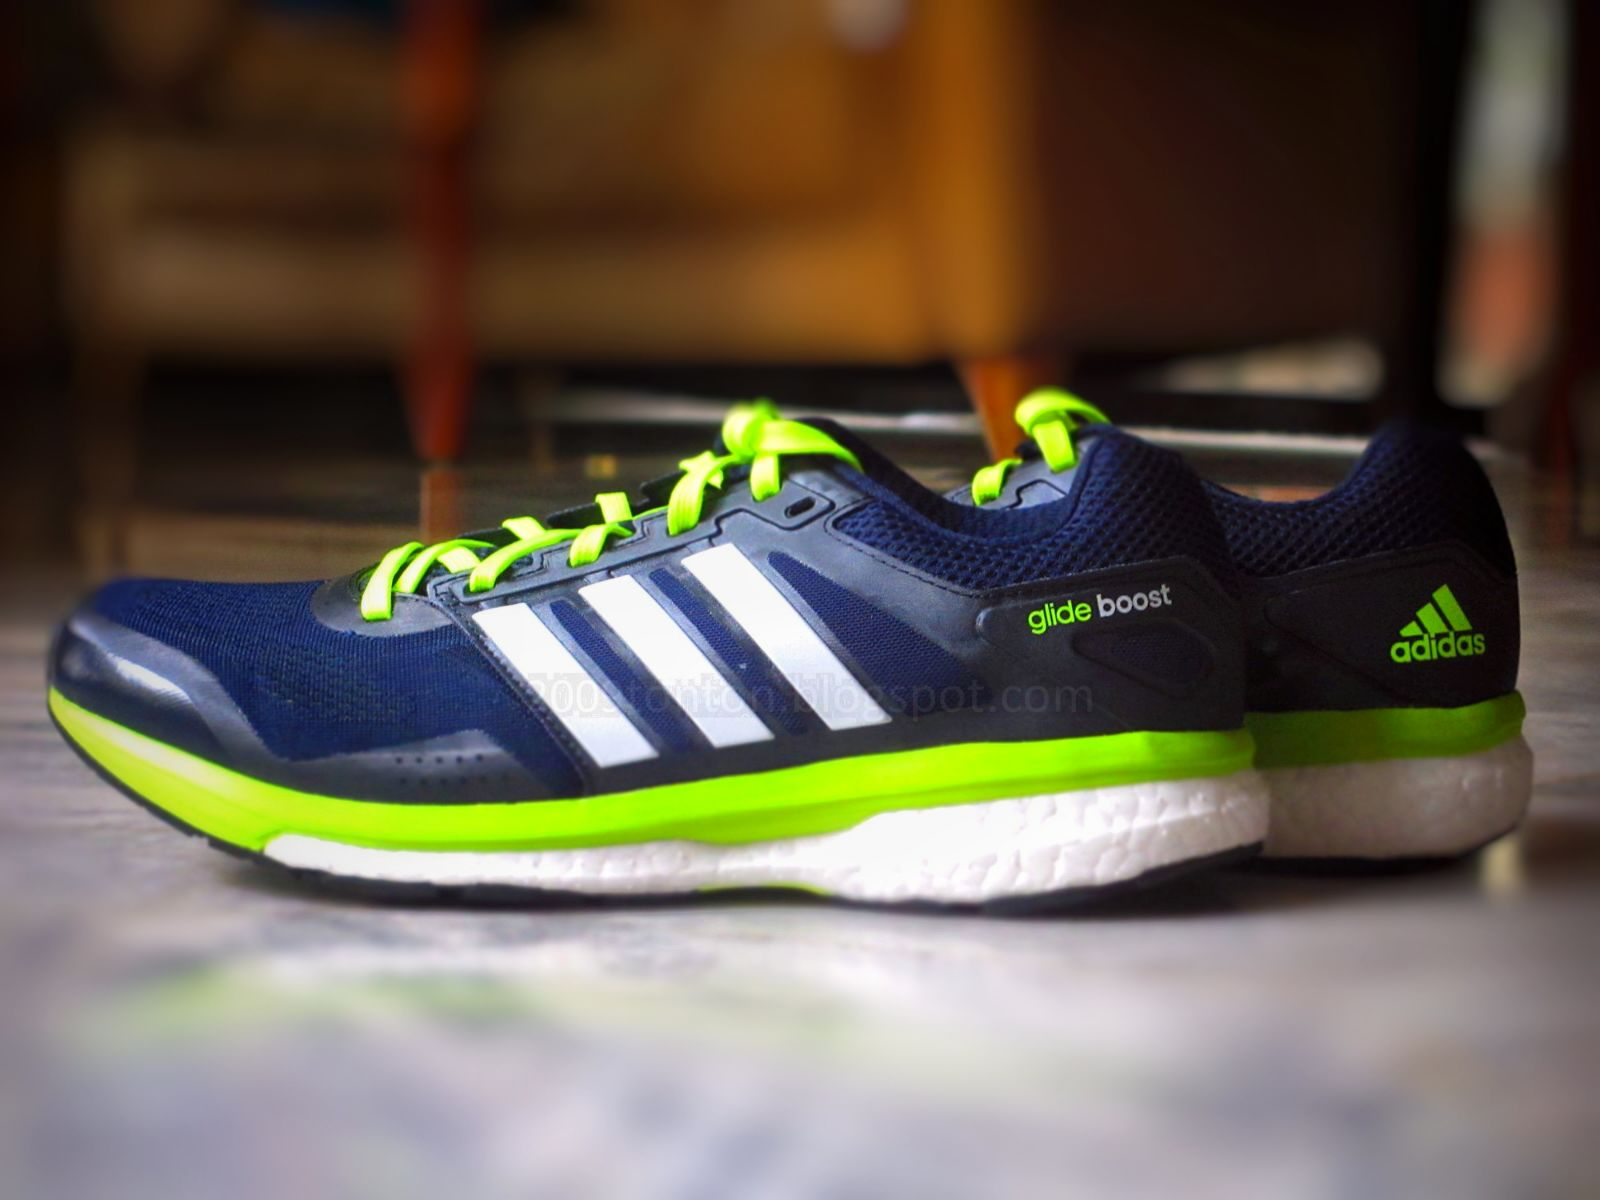 preview of sells save up to 80% sweden adidas supernova glide boost 7 review 61176 5acfc